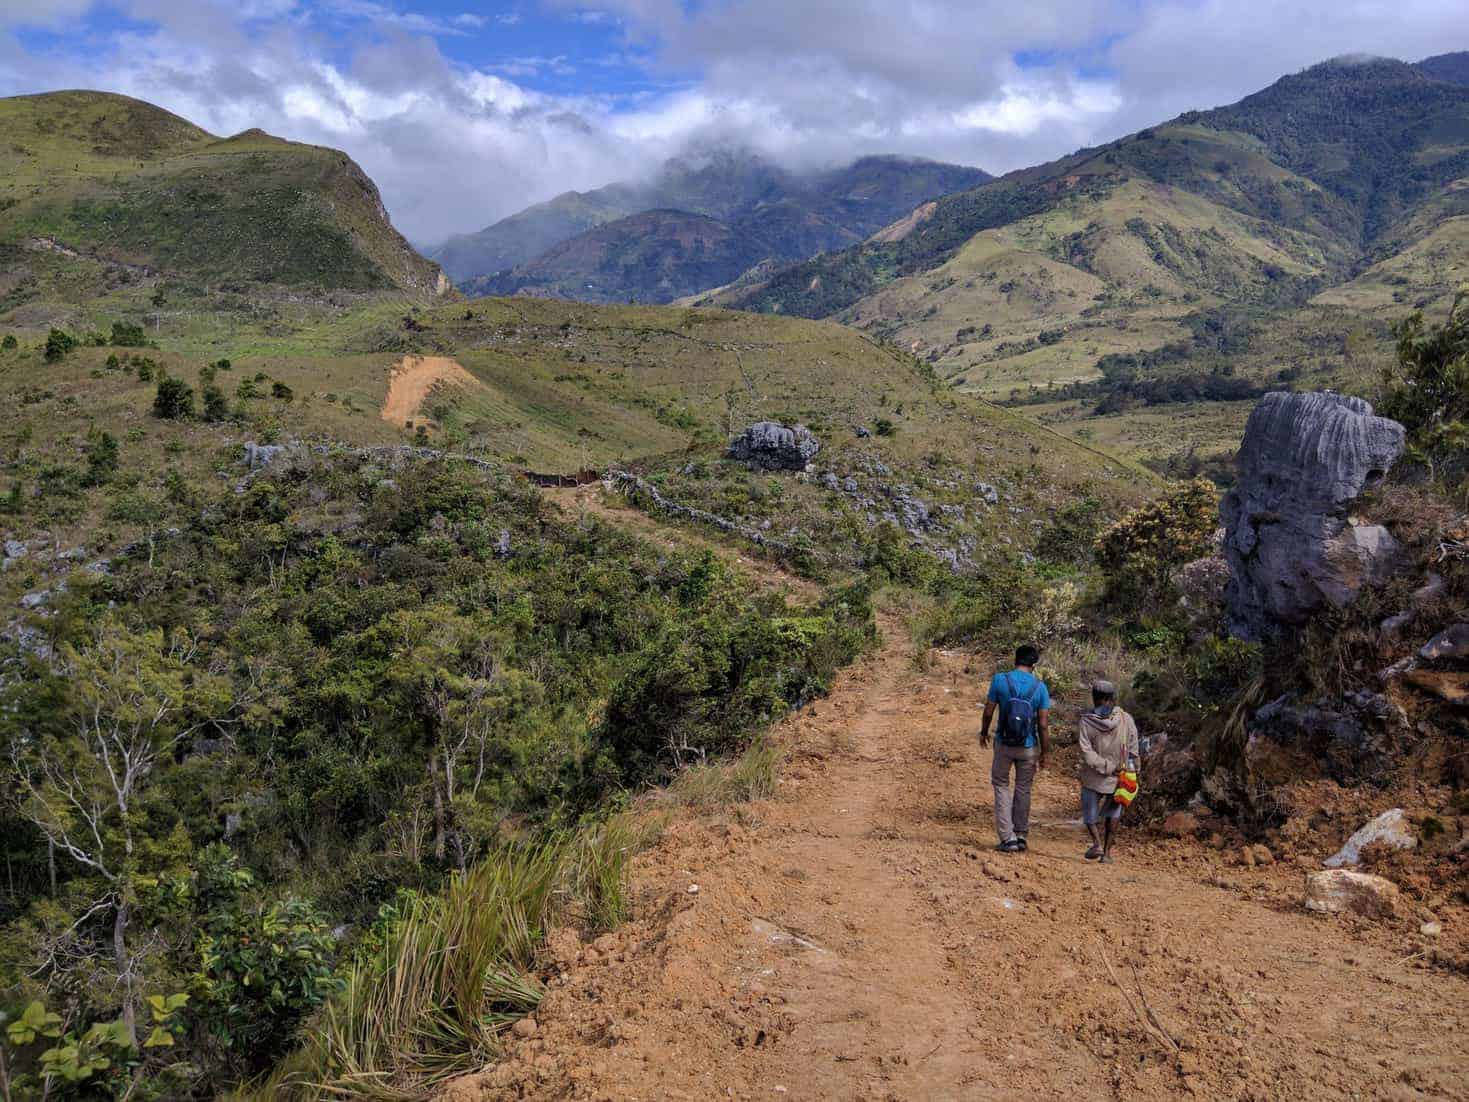 On the mountain trail towards the Baliem Valley, Papua, Indonesia